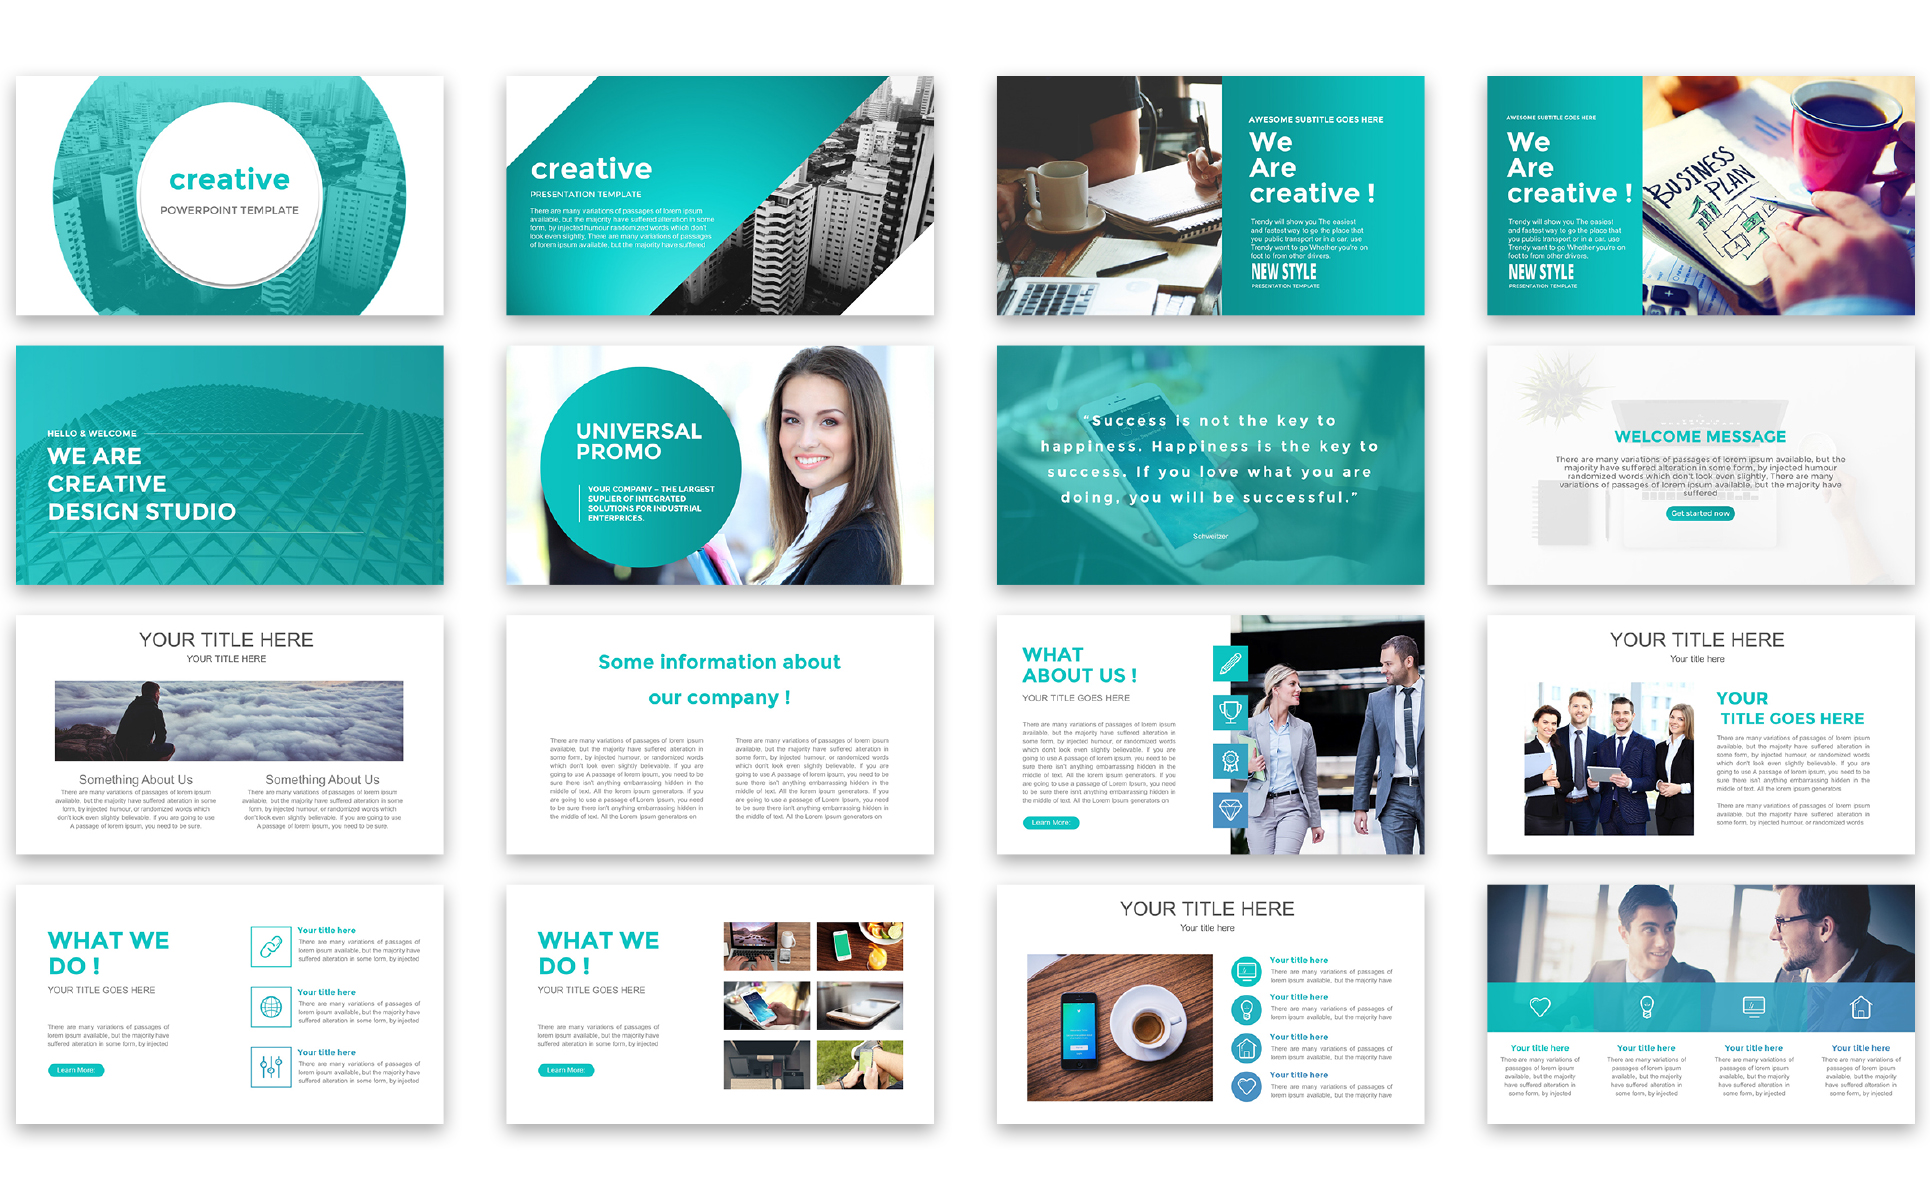 Creative presentation powerpoint template 67023 creative presentation powerpoint template big screenshot toneelgroepblik Image collections